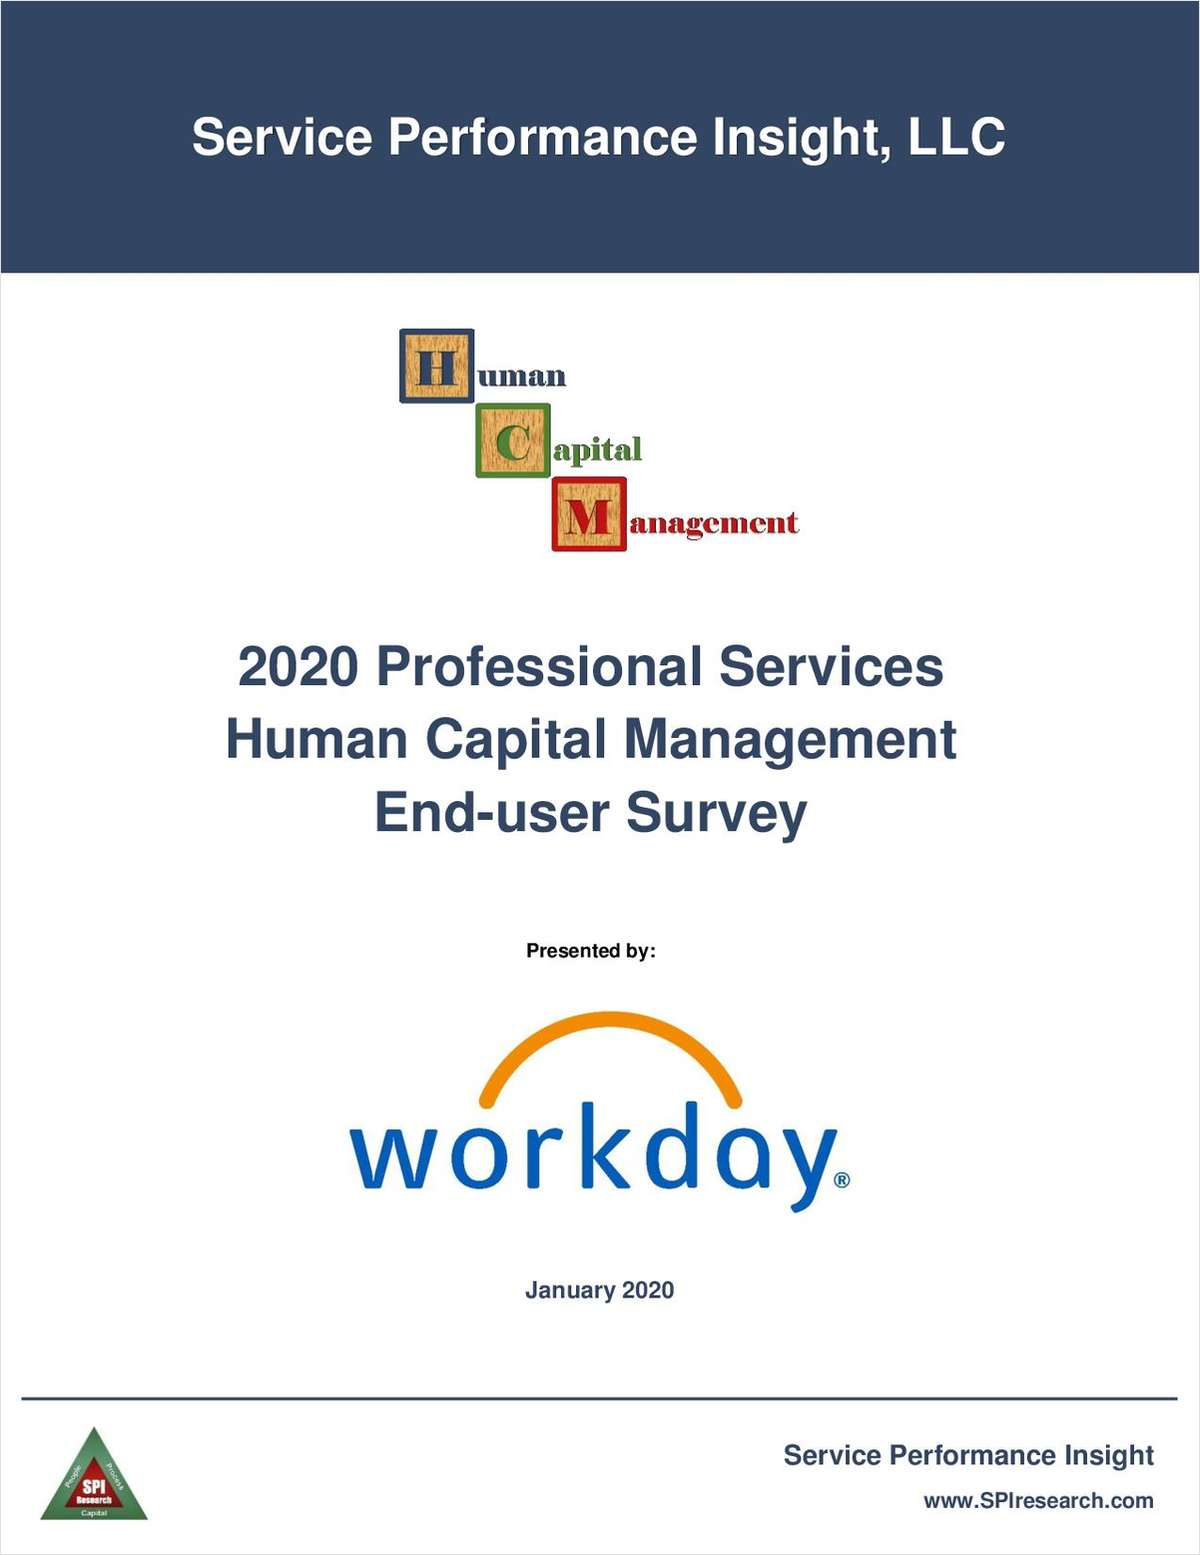 2020 Professional Services HCM End-User Survey Report